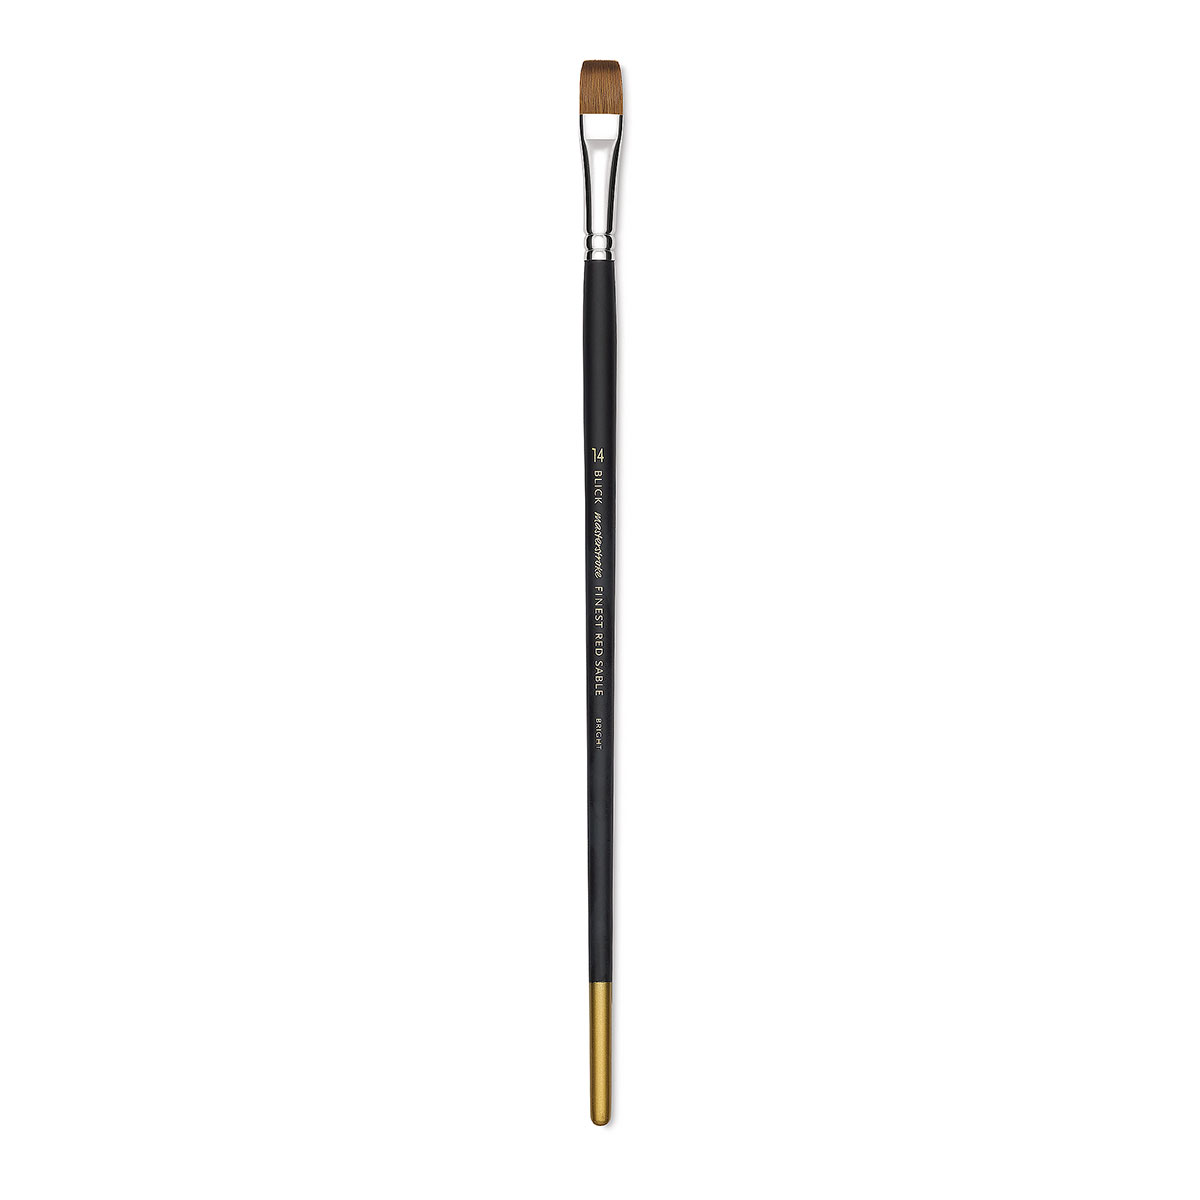 Blick Masterstroke Finest Red Sable Brush - Bright, Size 14, Long Handle